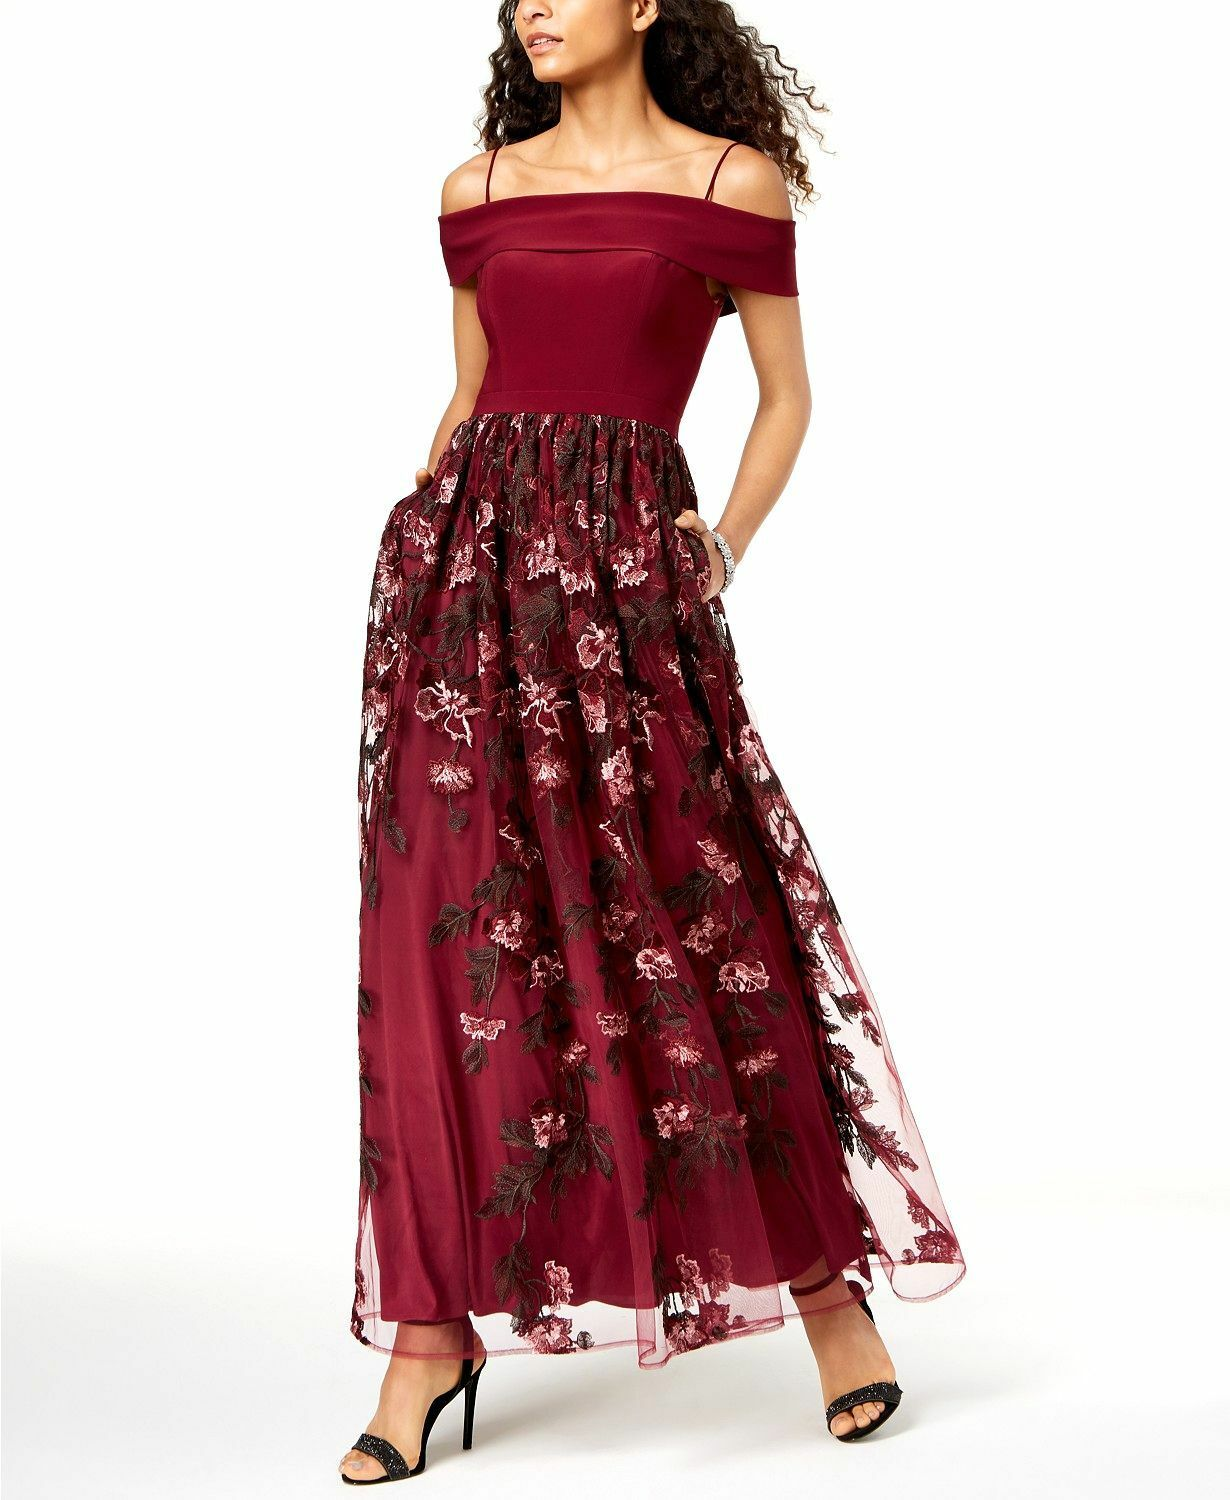 NIGHT WAY WOMEN'S RED FLORAL EMBROIDERED OFF-THE-SHOULDER GOWN DRESS SIZE 8